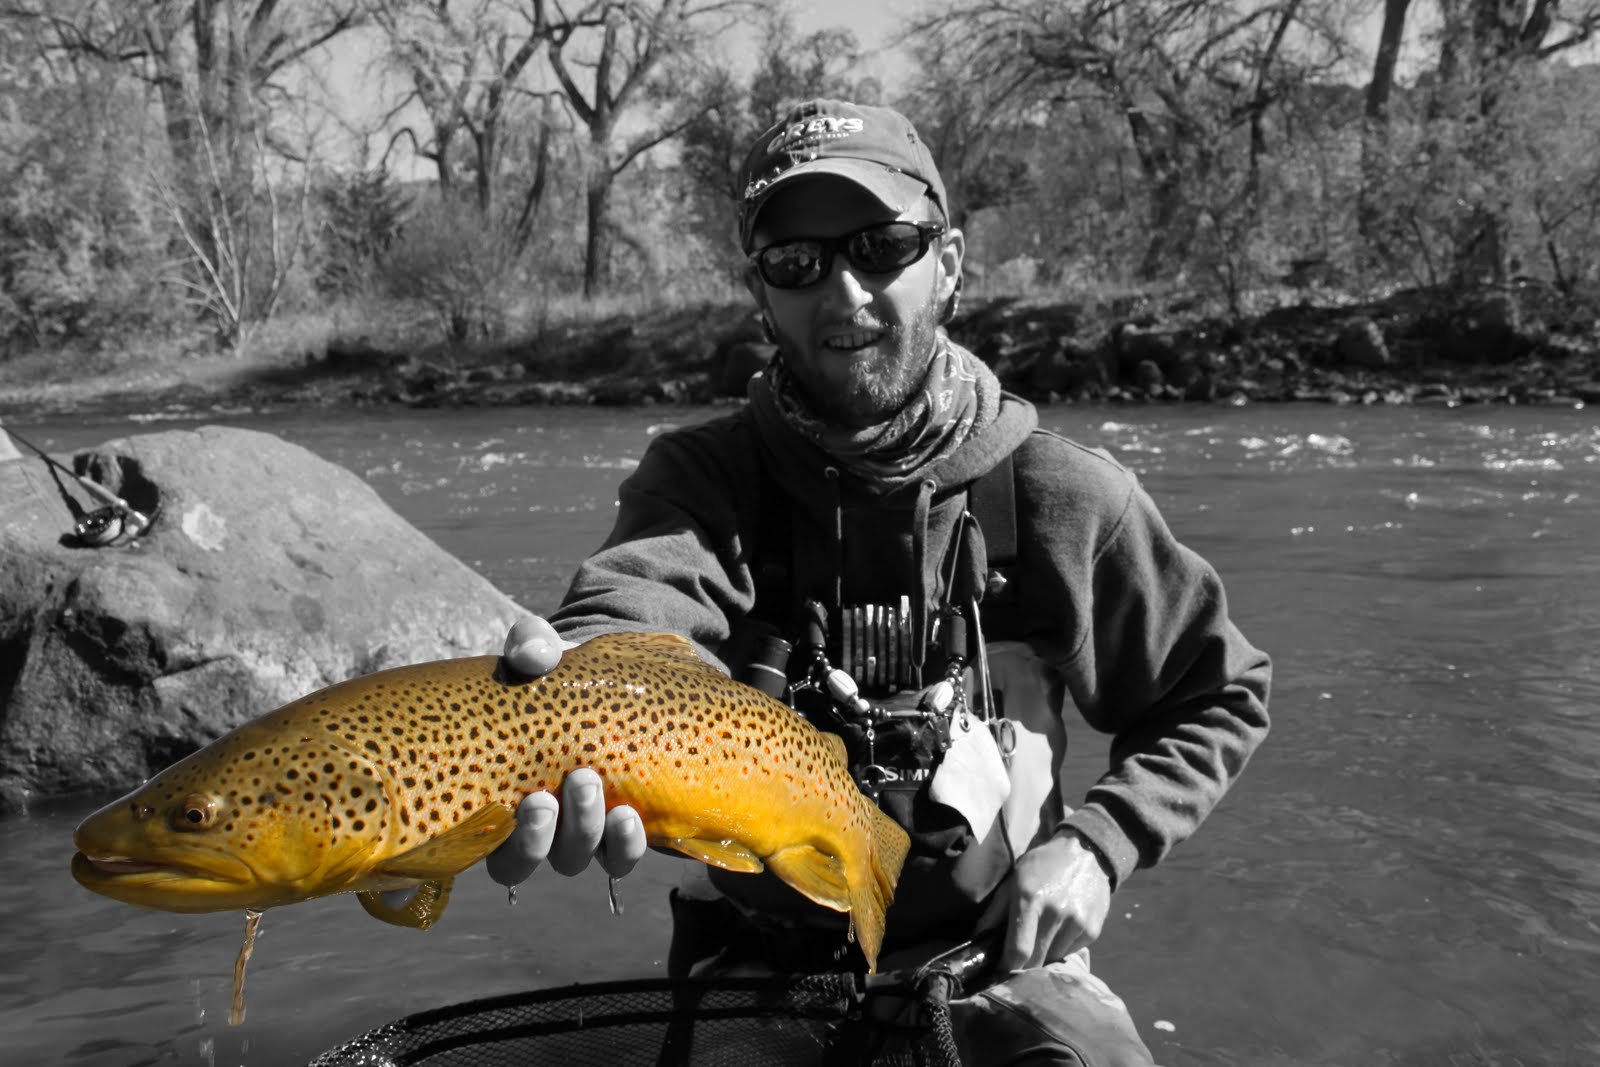 Conejos river anglers current news may 2011 for Fly fishing team usa